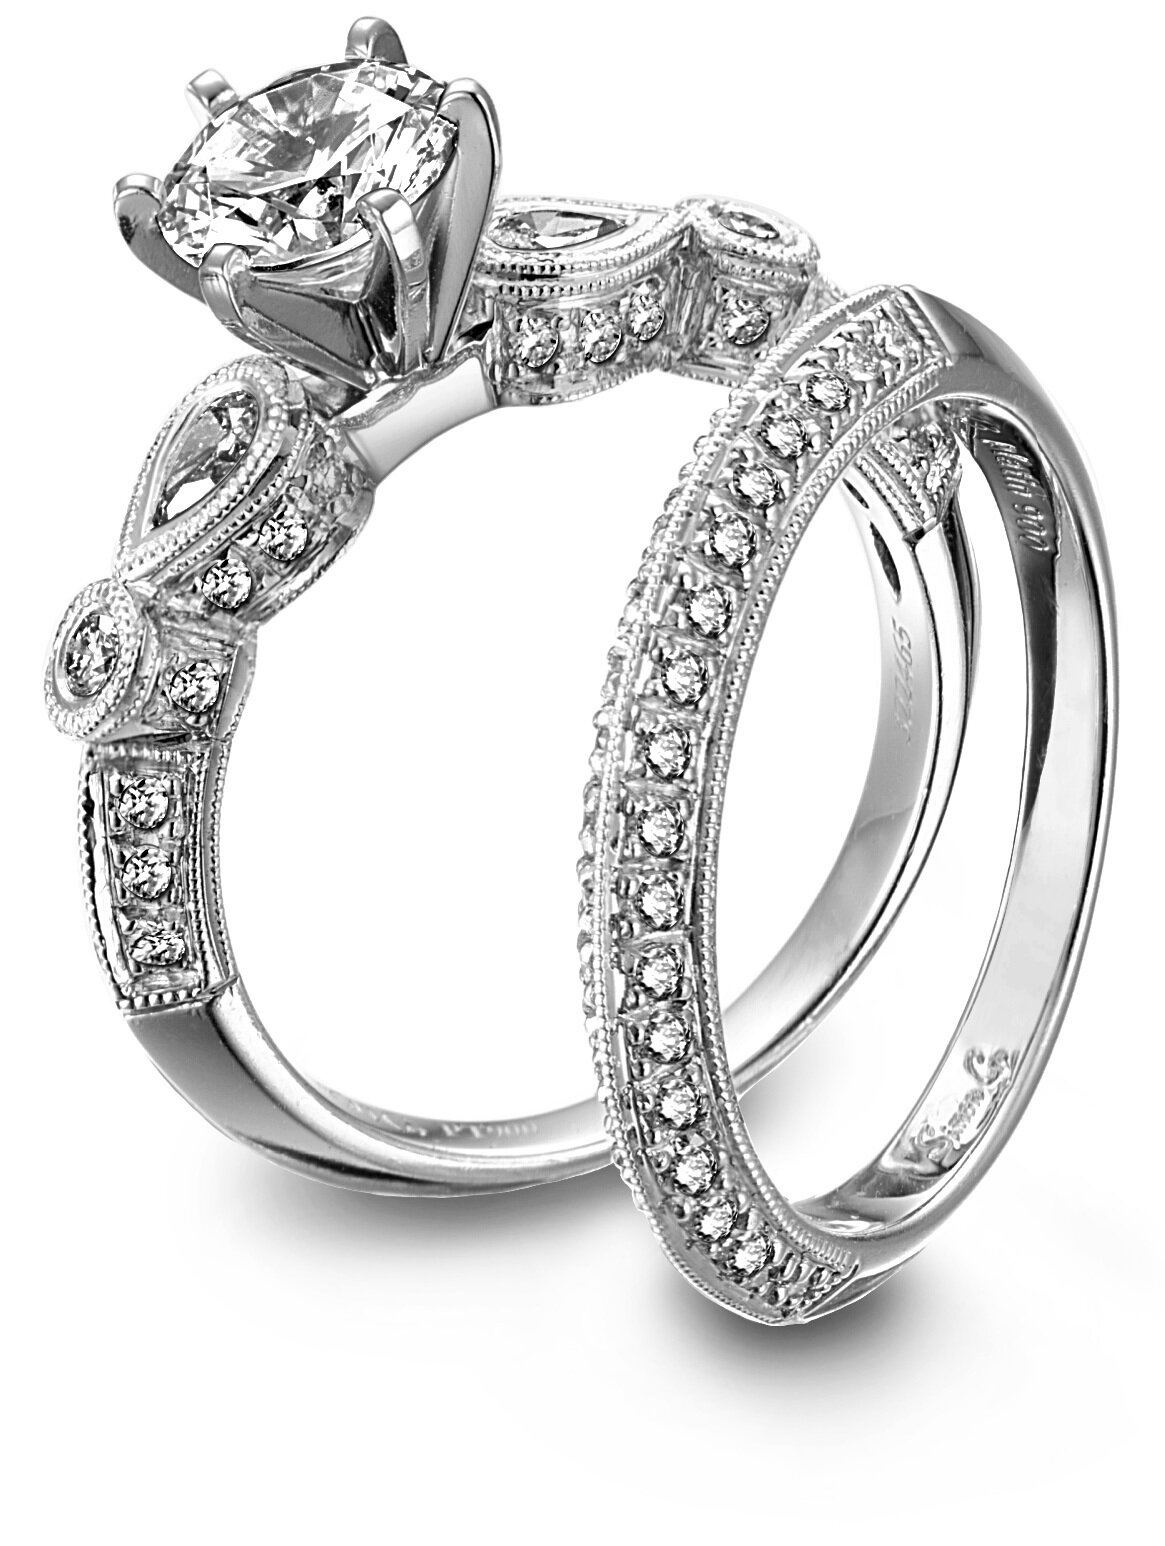 15 examples of brilliant wedding rings | mostbeautifulthings